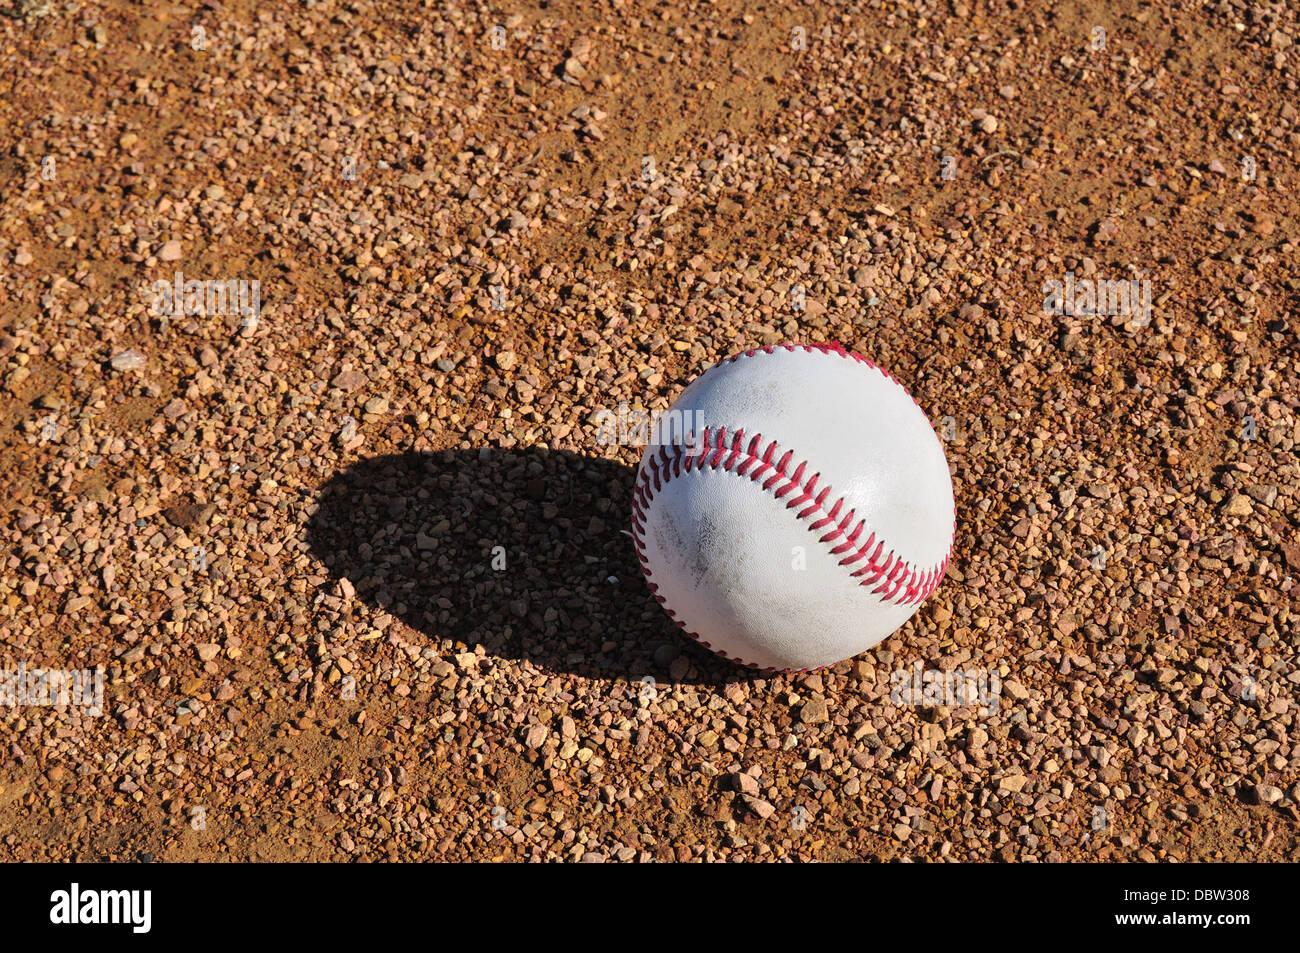 Sur le terrain de base-ball sur un terrain de baseball Photo Stock